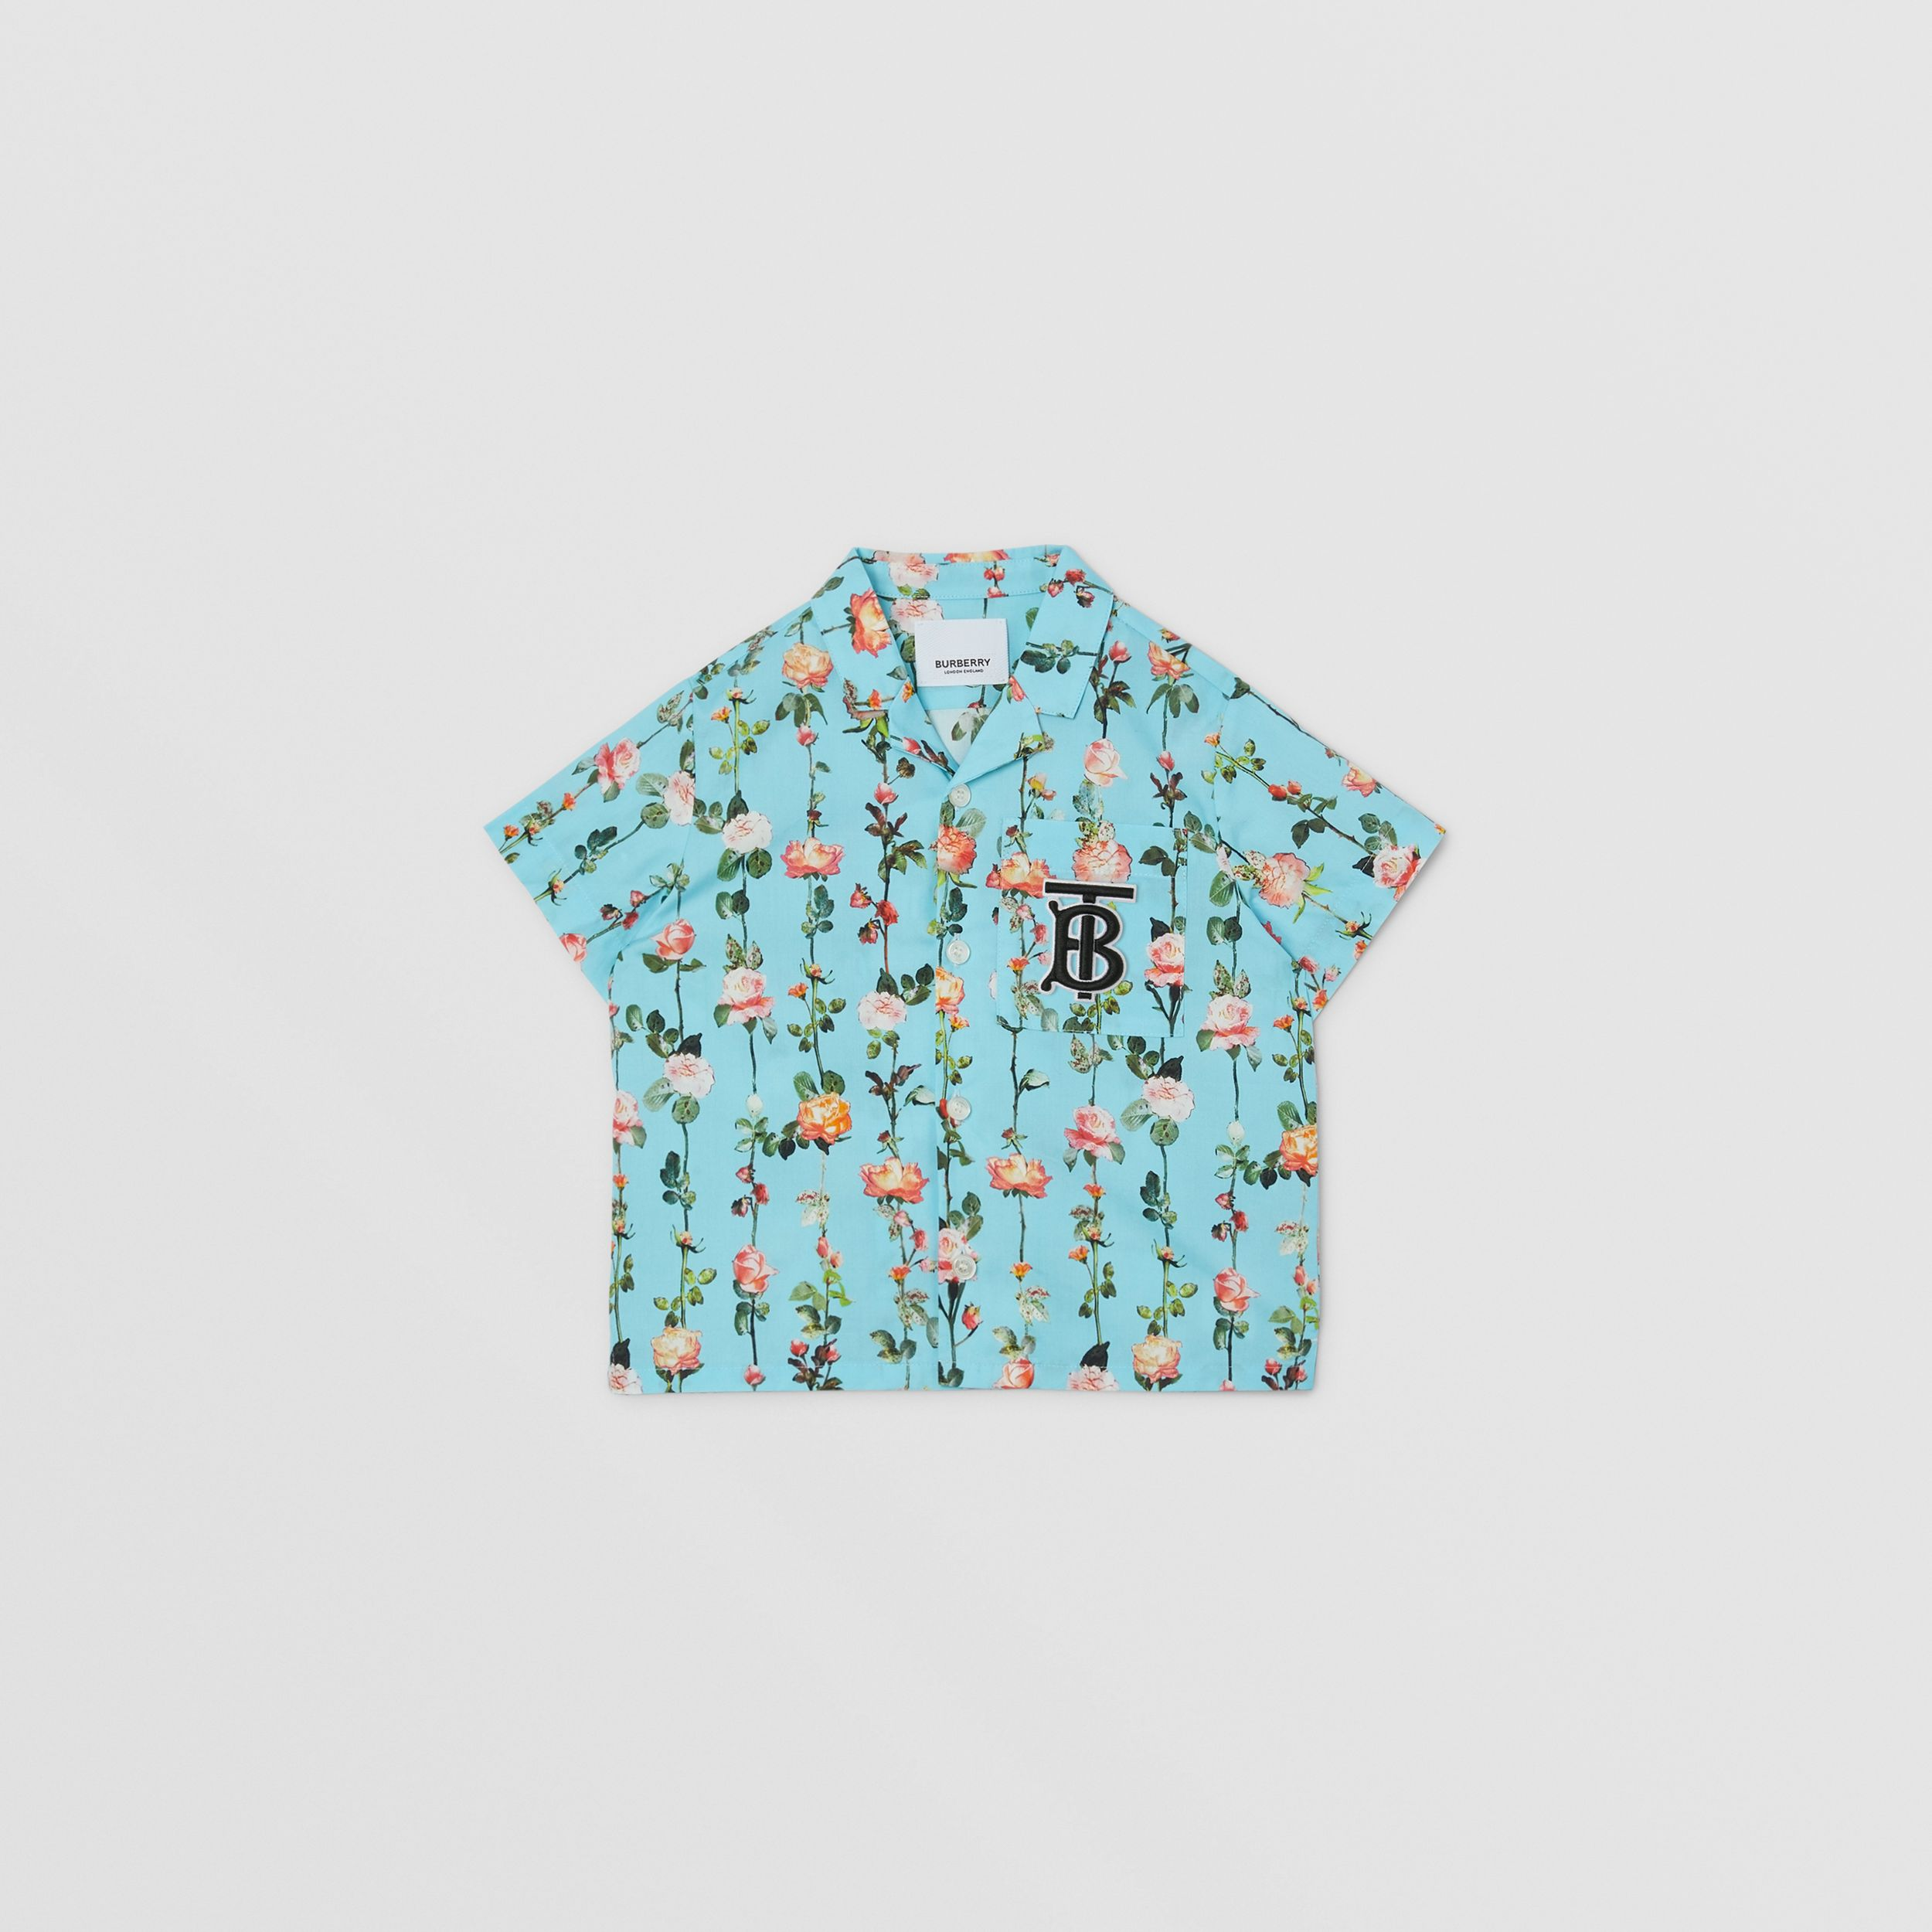 Short-sleeve Monogram Motif Rose Print Cotton Shirt in Blue Topaz | Burberry - 1